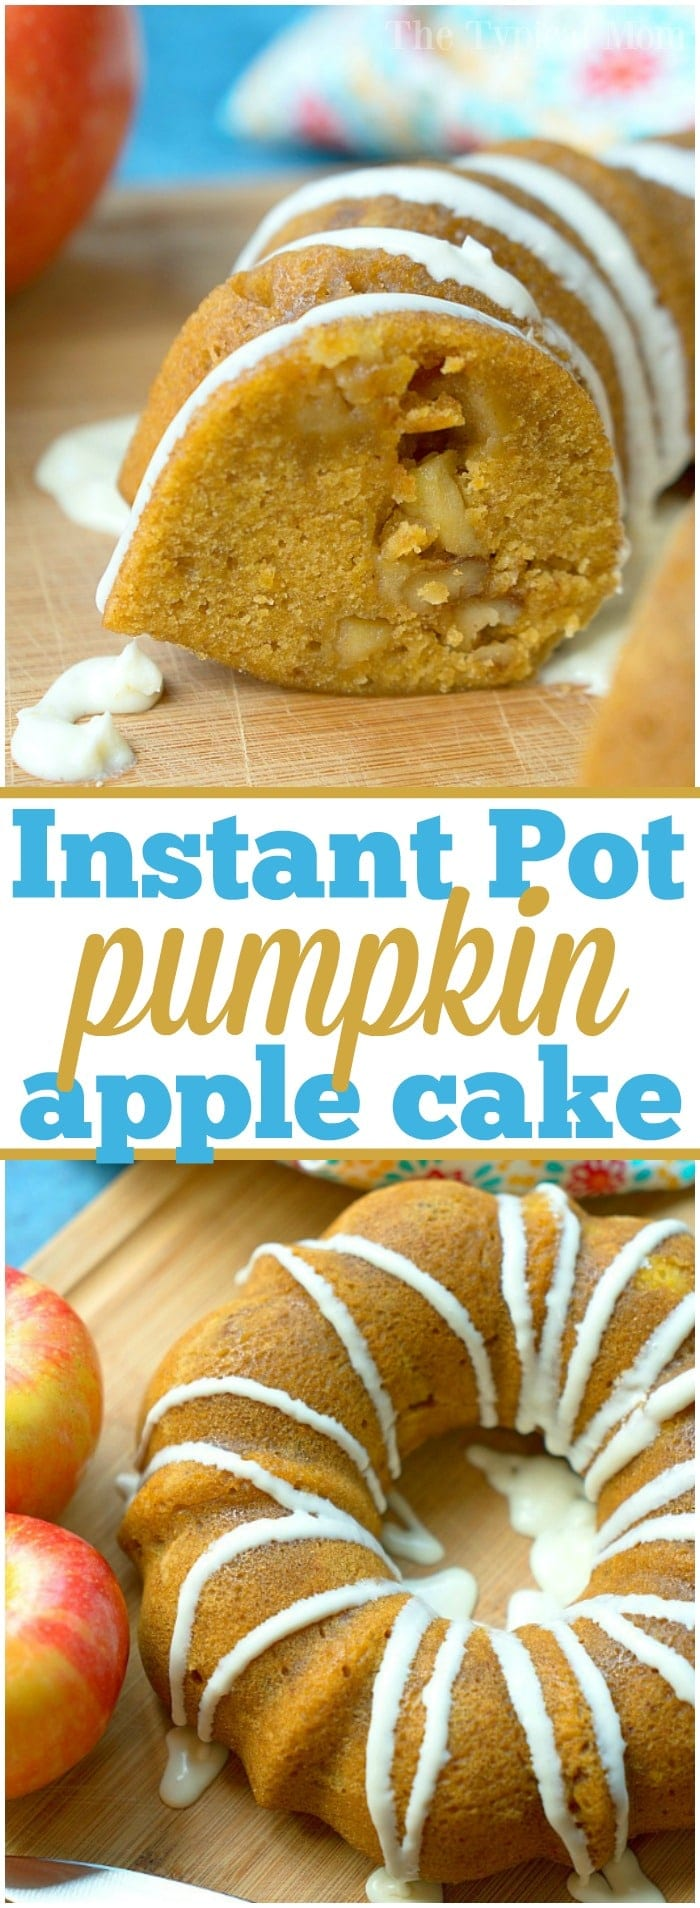 The most delicious Instant Pot pumpkin apple cake that's moist and perfect for Fall. Great breakfast or dessert bread cooked right in your pressure cooker! #instantpot #pumpkin #cake